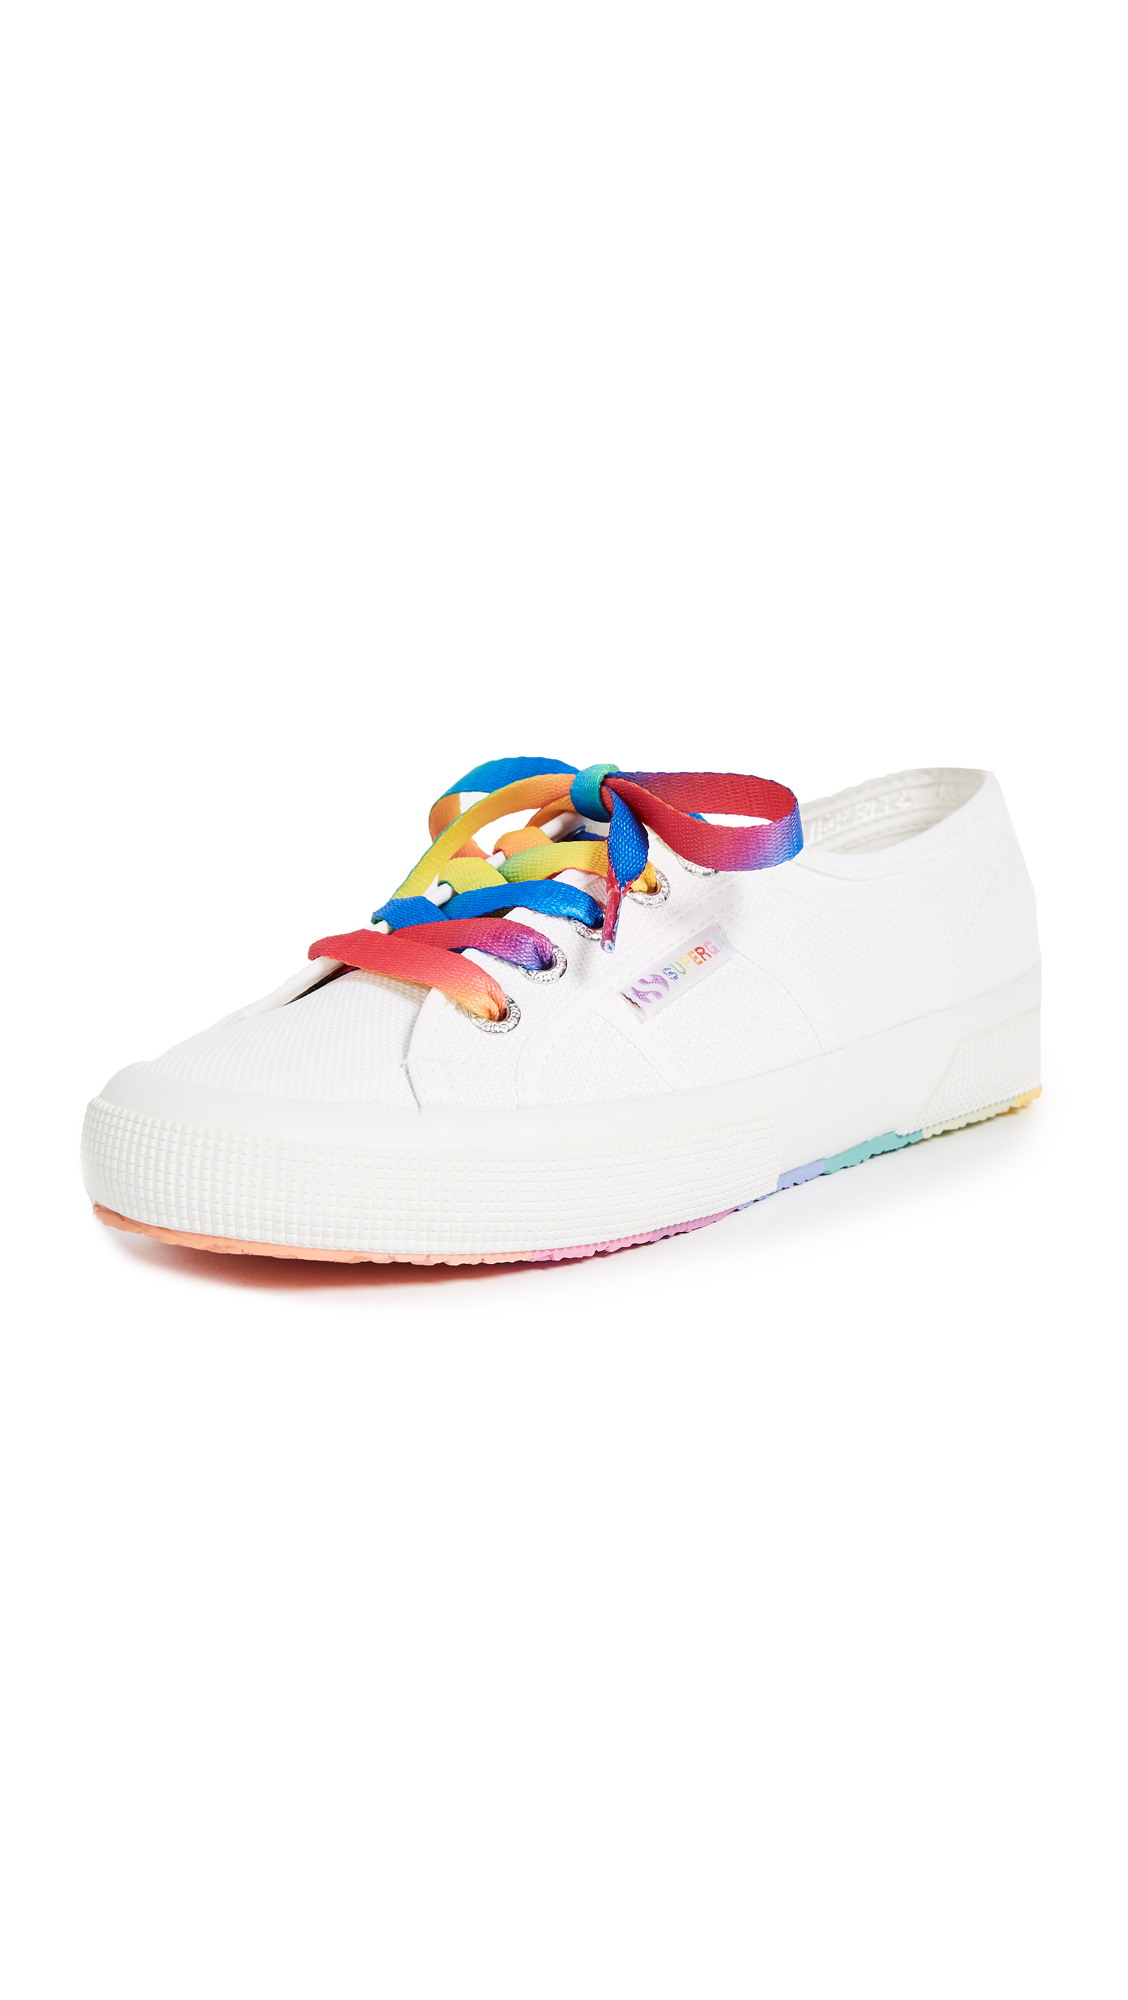 Superga 2750 COTW Multi Color Sneakers - White Multi